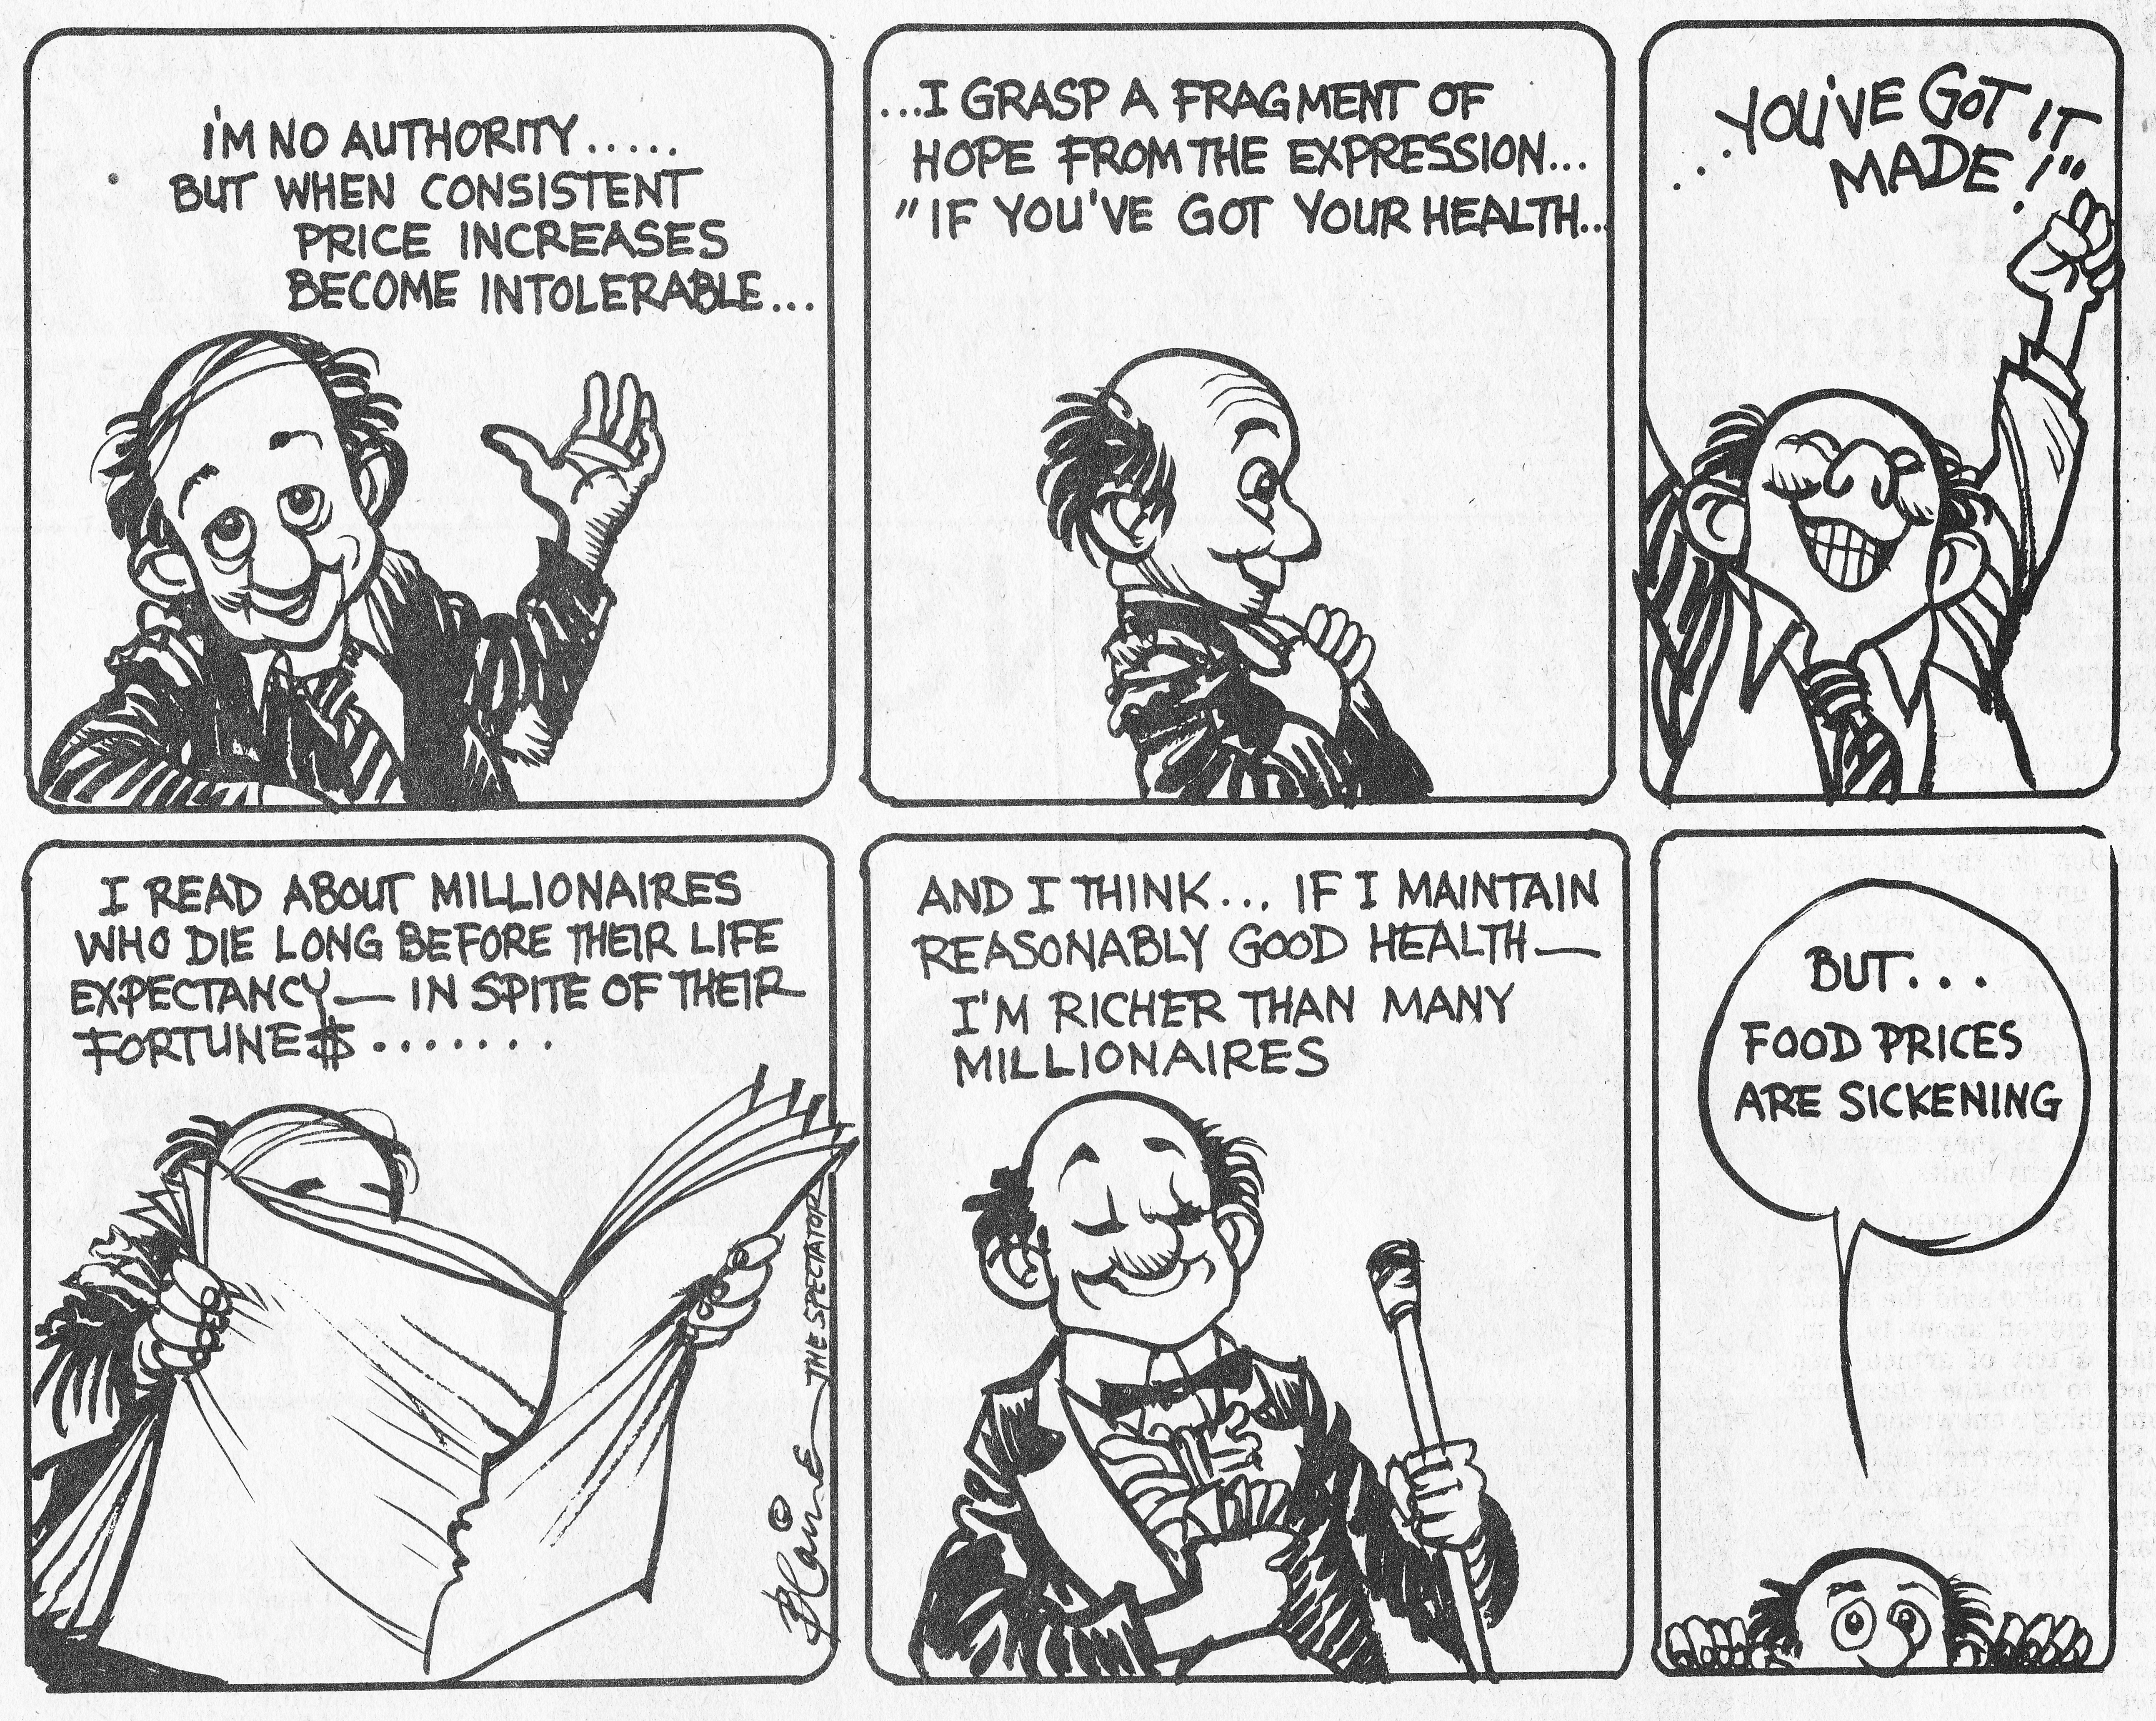 C:\Users\Robert\Documents\CARTOONING ILLUSTRATION ANIMATION\IMAGE BY CARTOONIST\M\MacDONALD BLAINE, Hamilton Spectator, 30 May 1981, 6.jpg